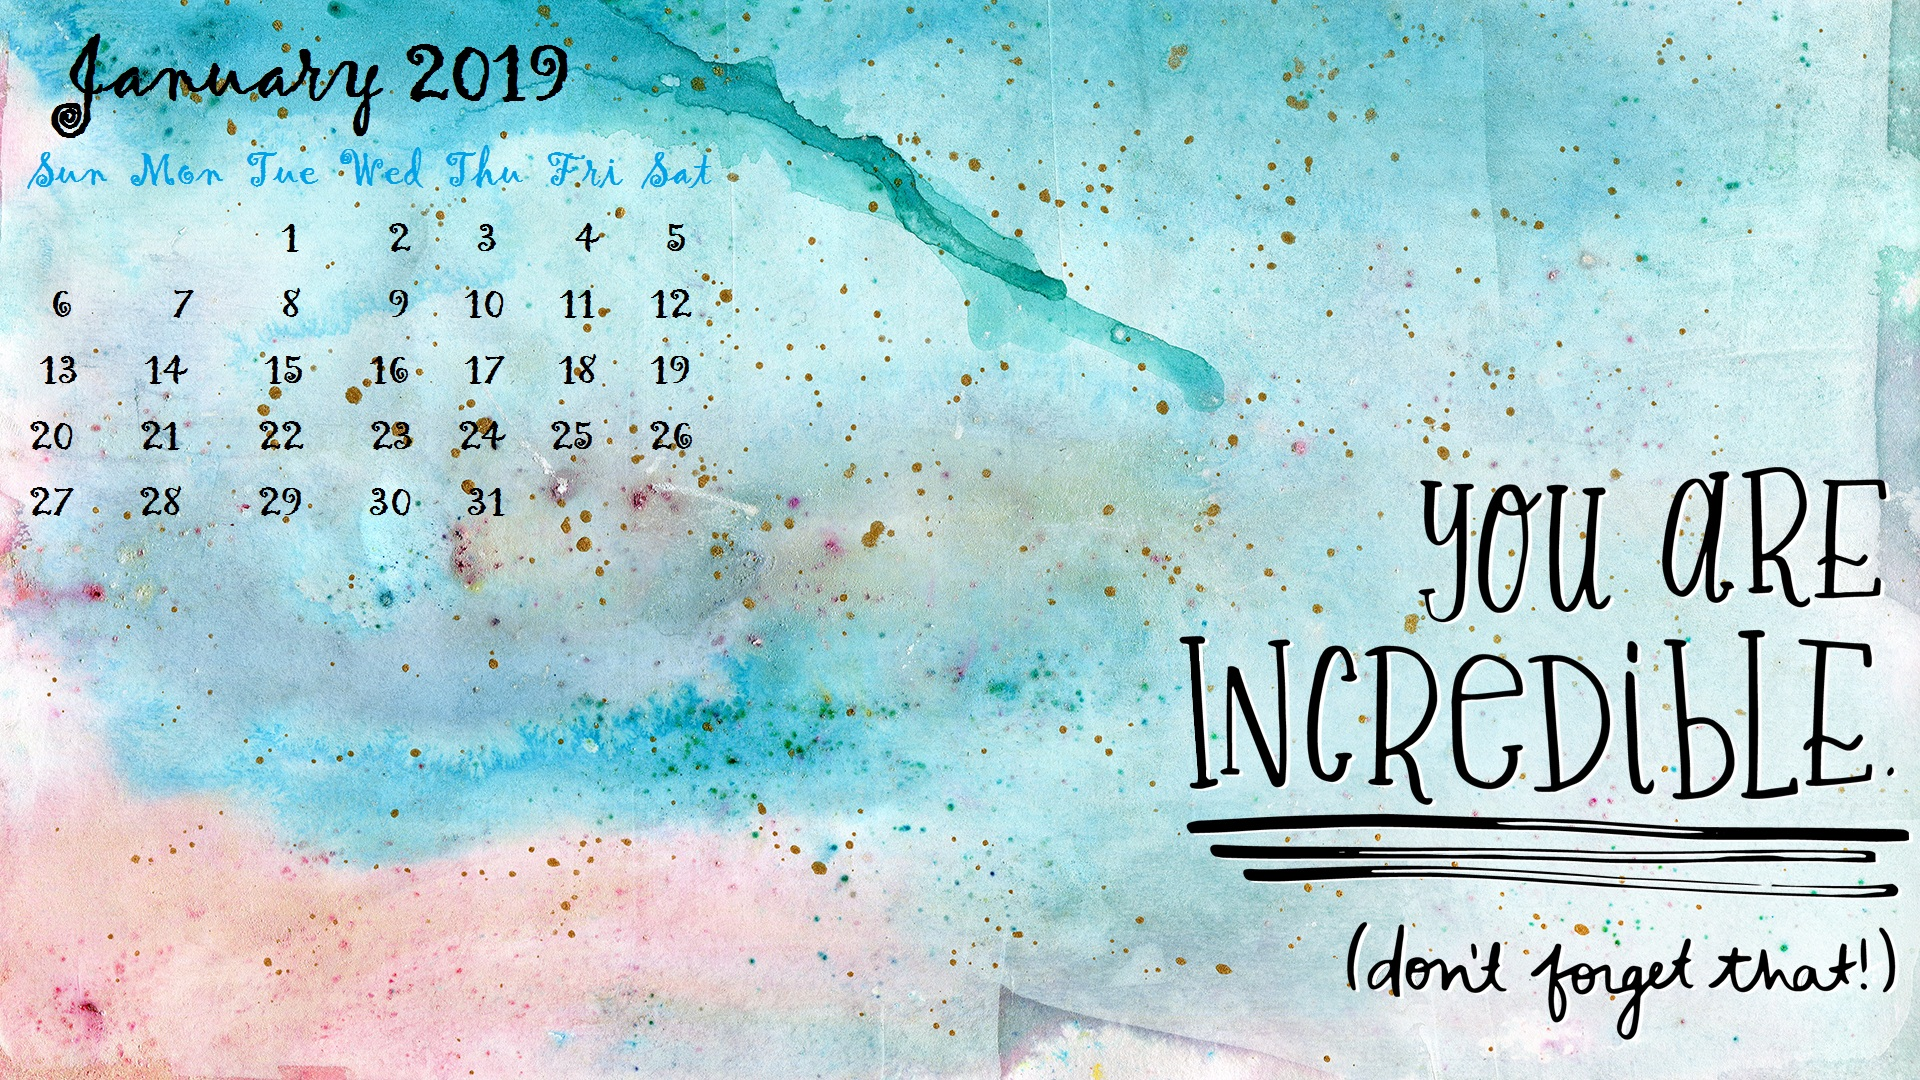 January 2019 Motivational Desktop Calendar